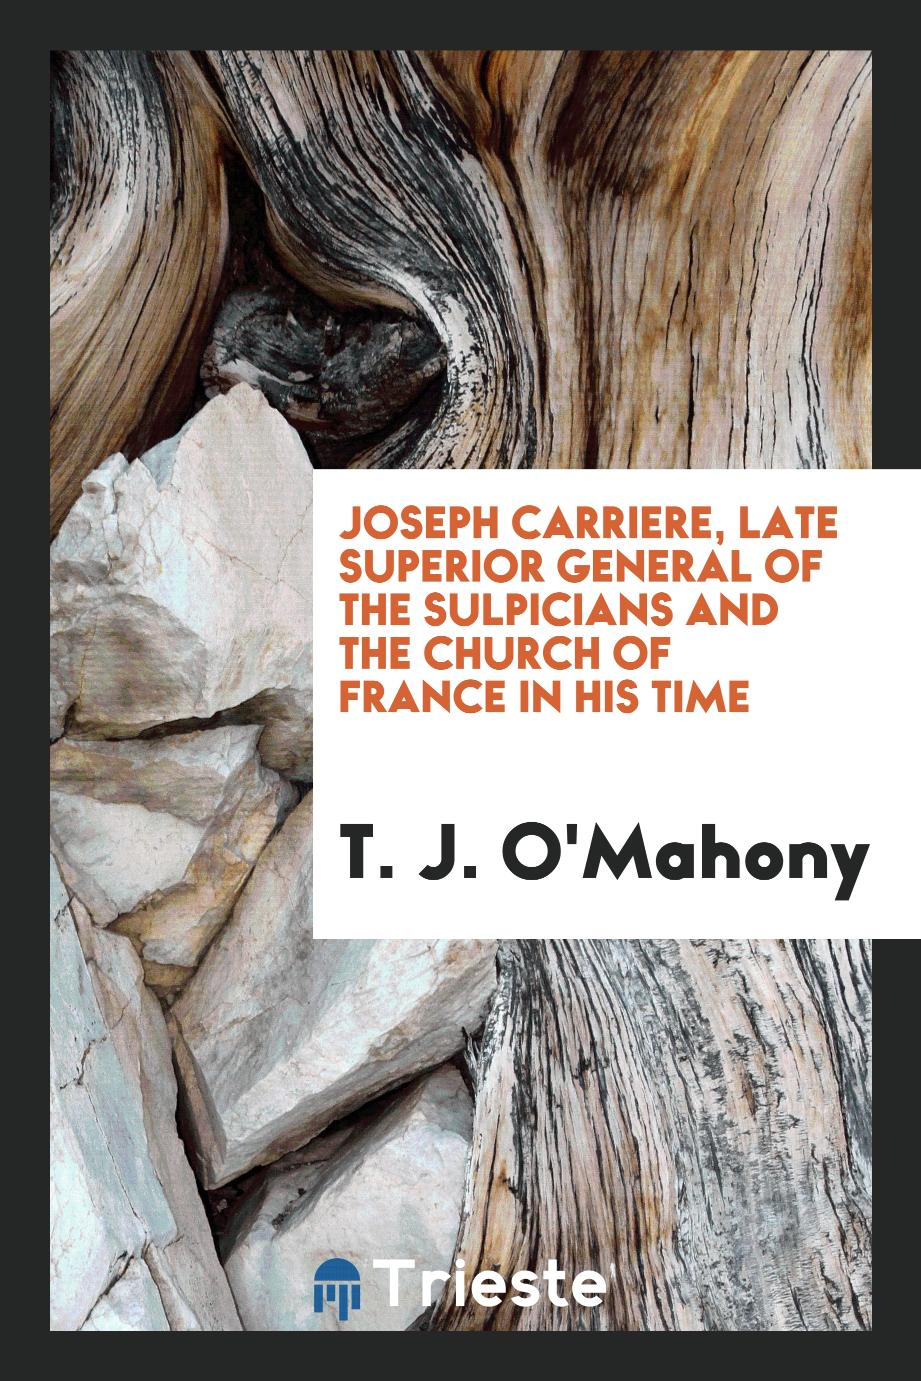 Joseph Carriere, late Superior General of the Sulpicians and the Church of France in his time